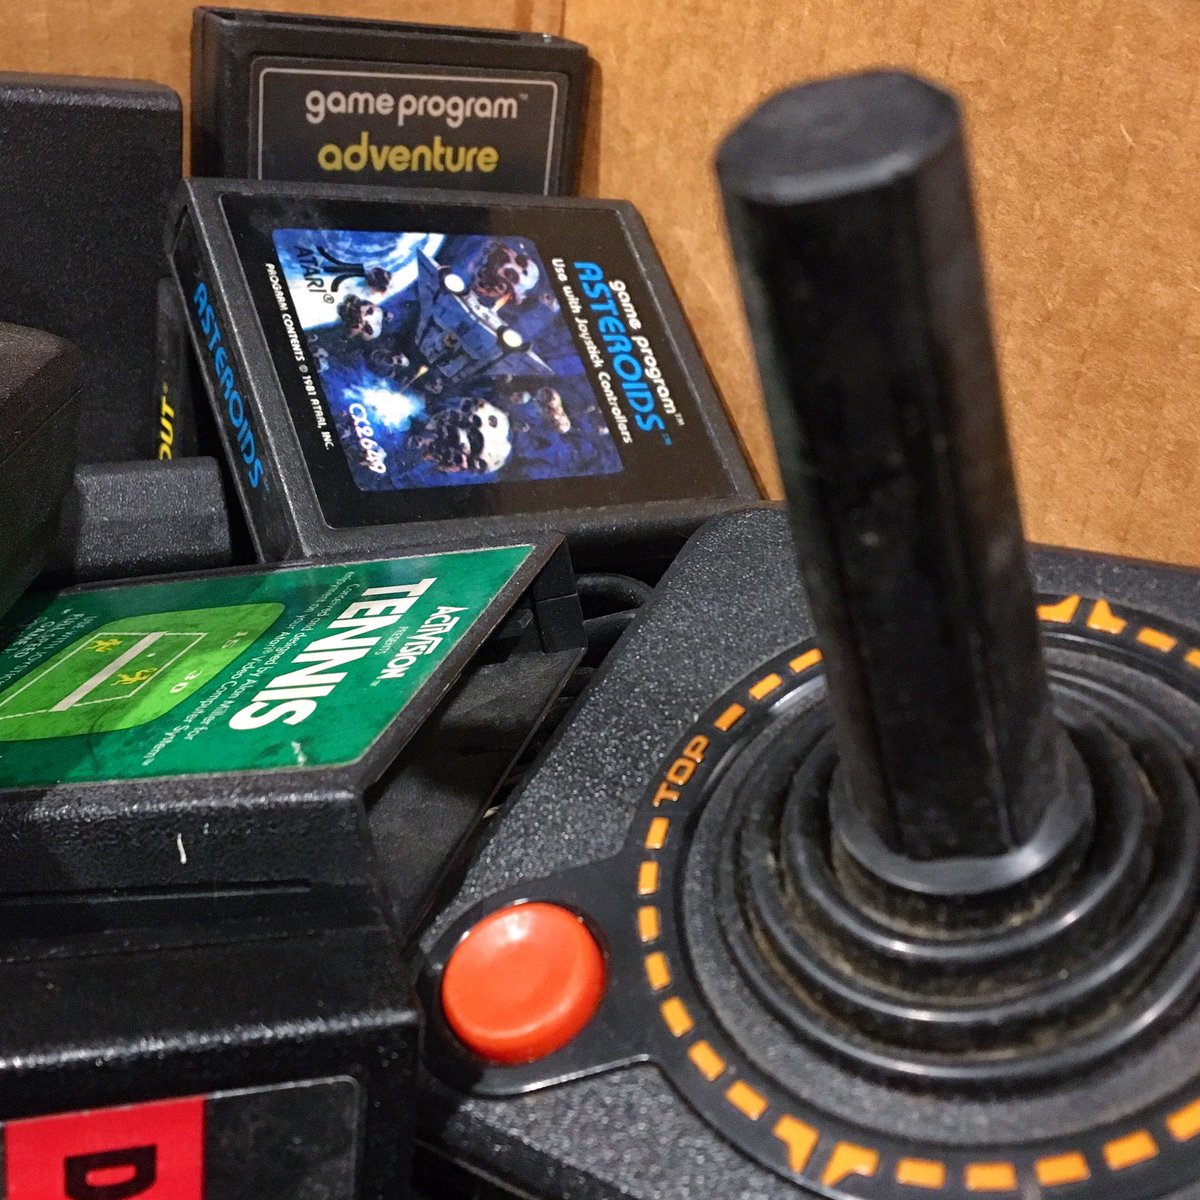 I'm a fan of the classic. 🕹| #videogames #atari #joystick #atari2600 #videogamecartridge #asteroids #adventure #activision #oldschool #waybackwednesday